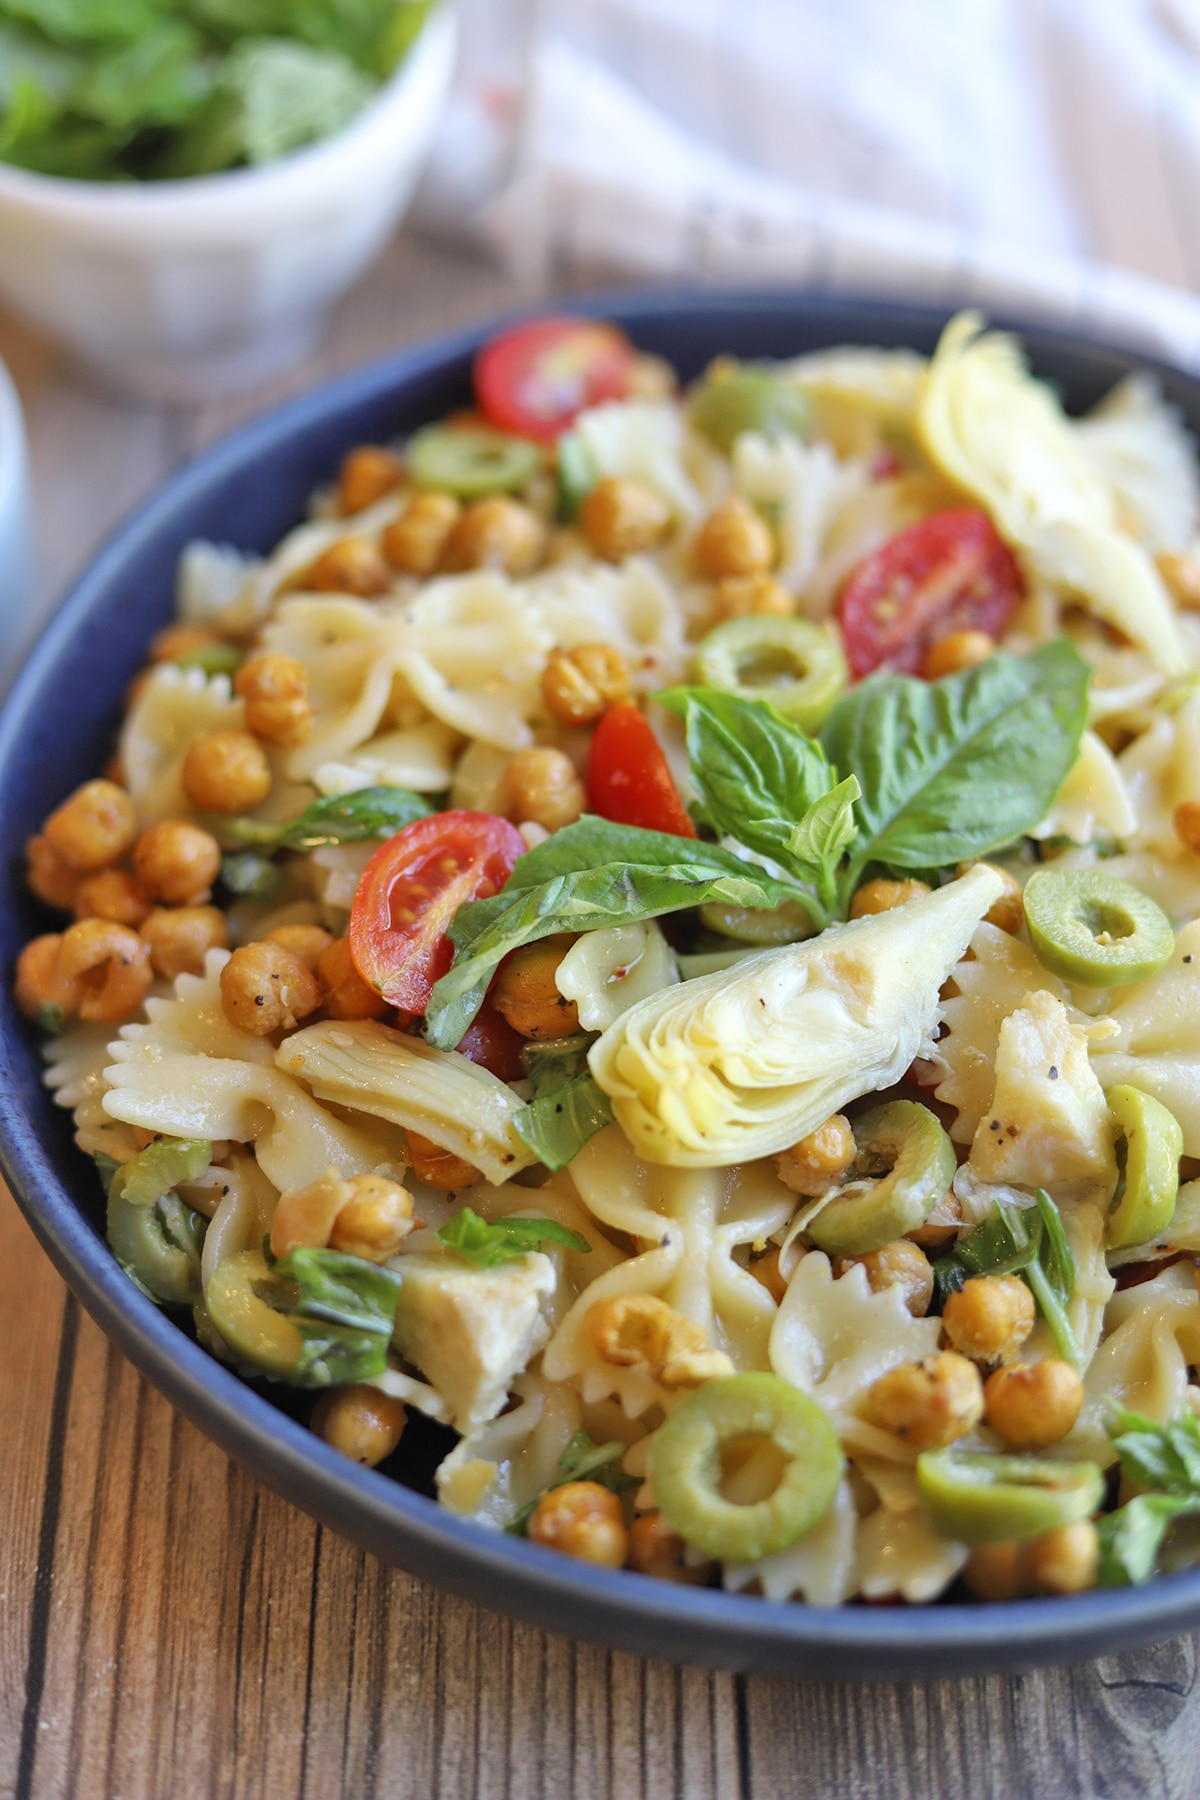 Pasta salad with fresh basil in blue bowl.